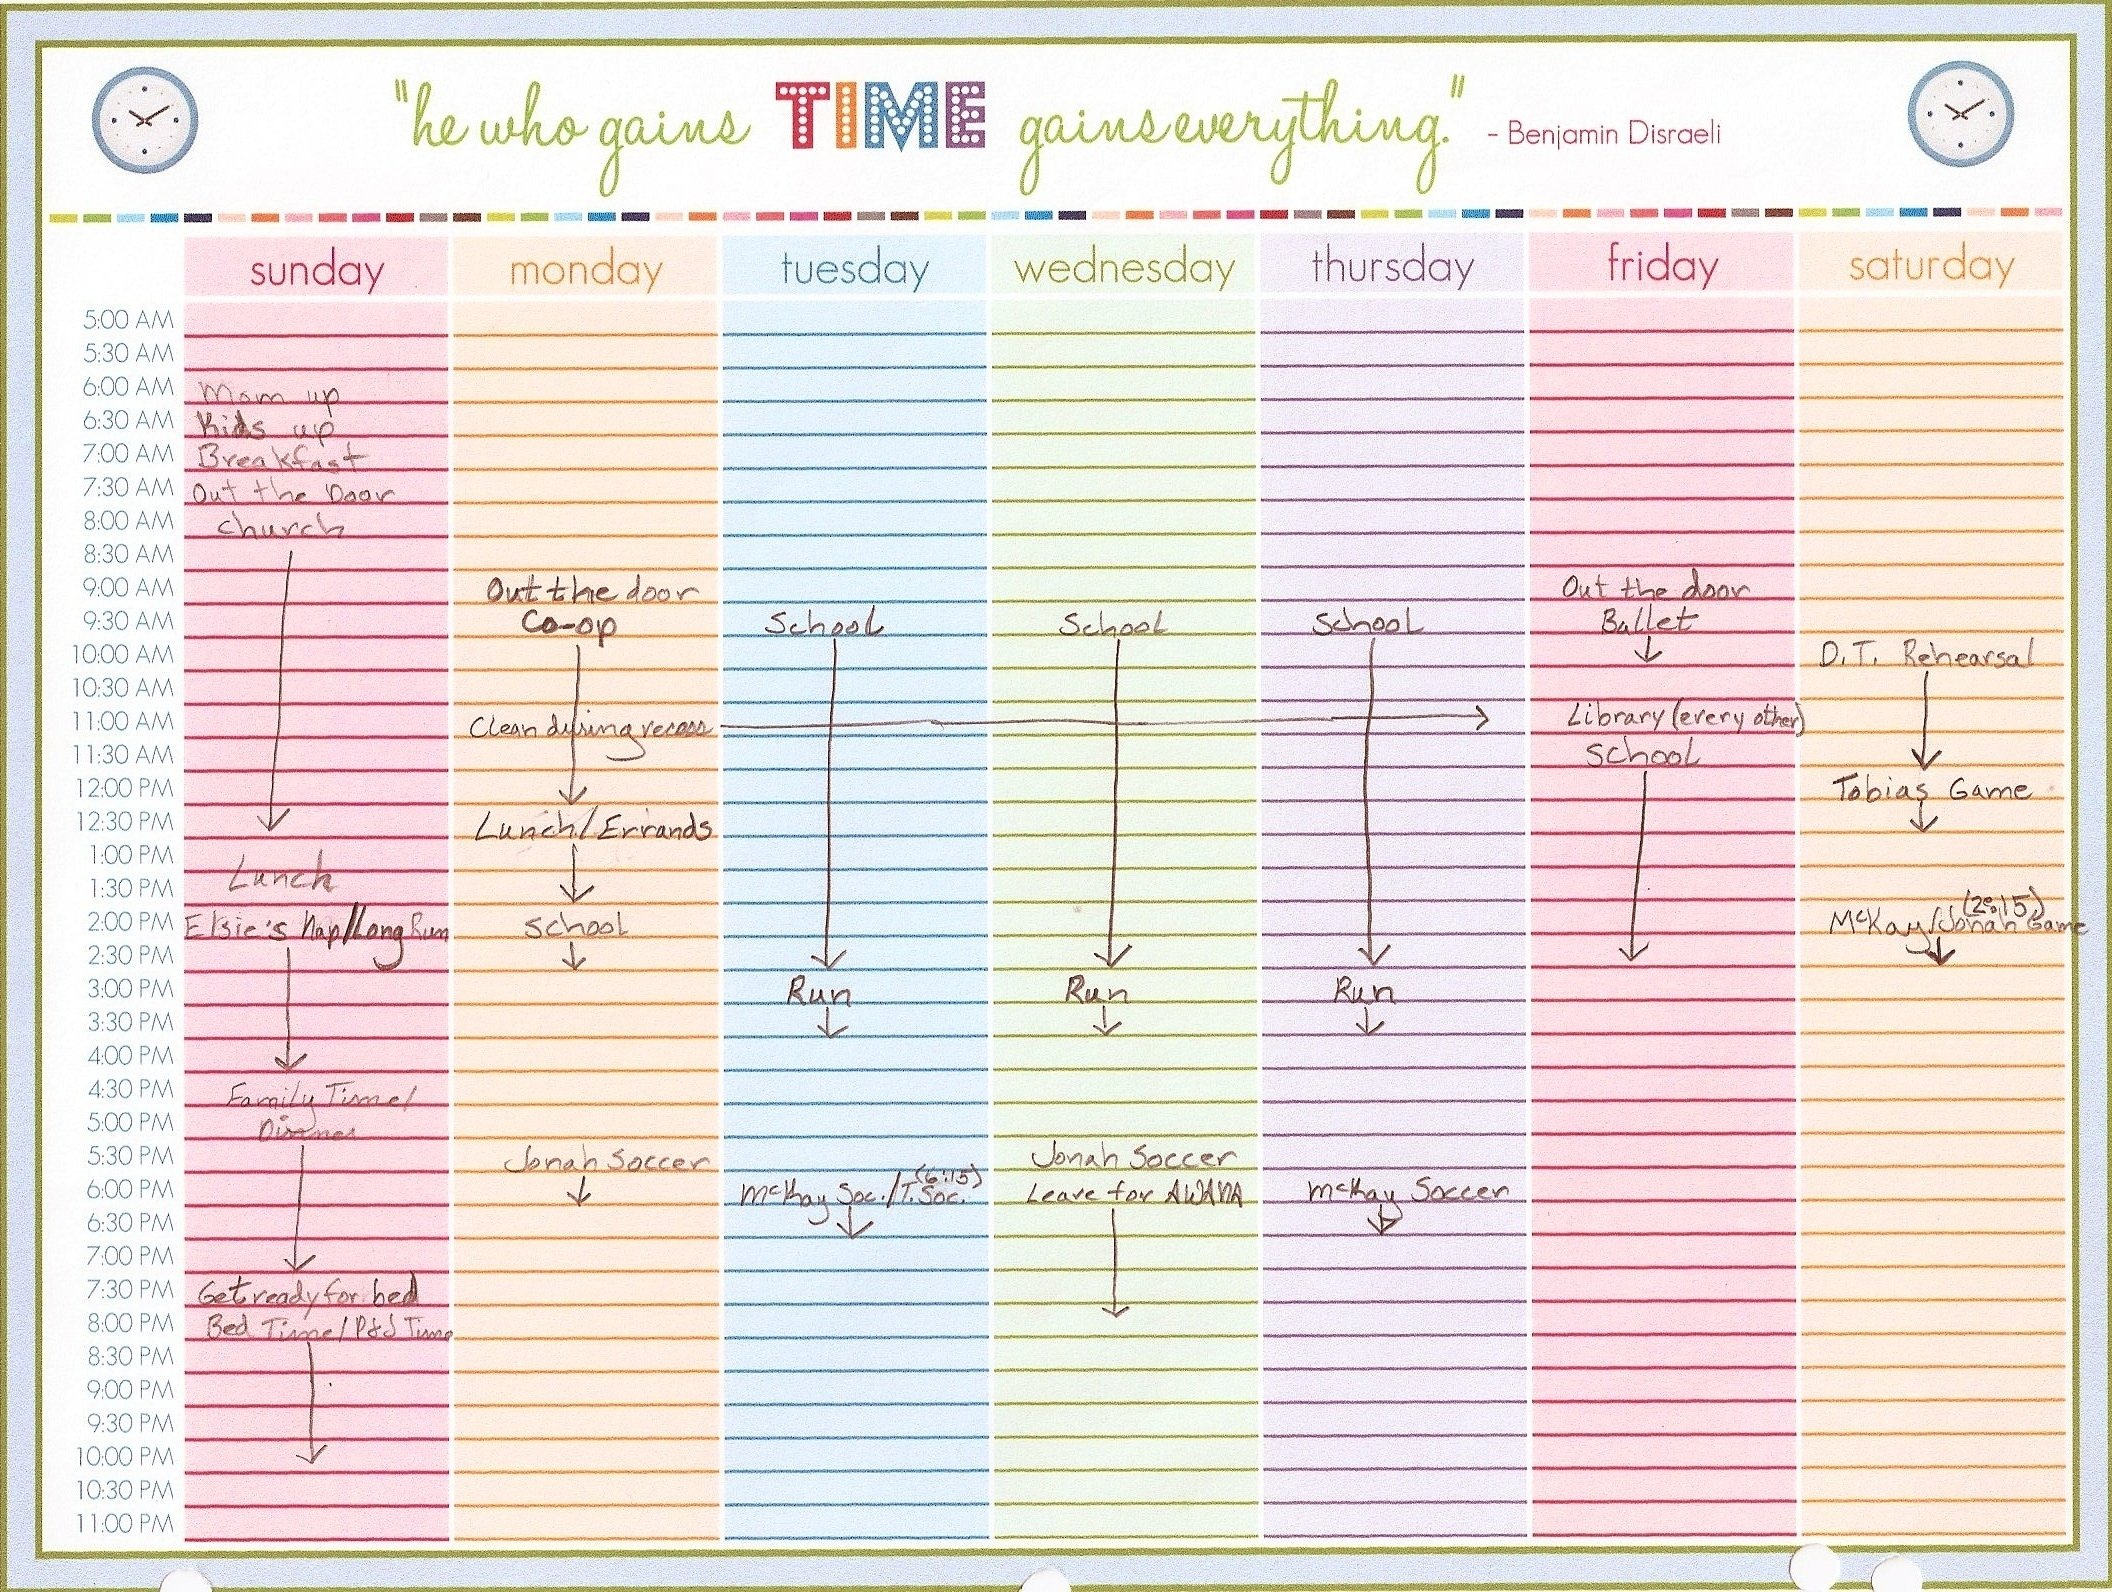 Monthly Calendars With Hourly Slots – Calendar Inspiration Weekly Printable Calendar With Time Slots Free